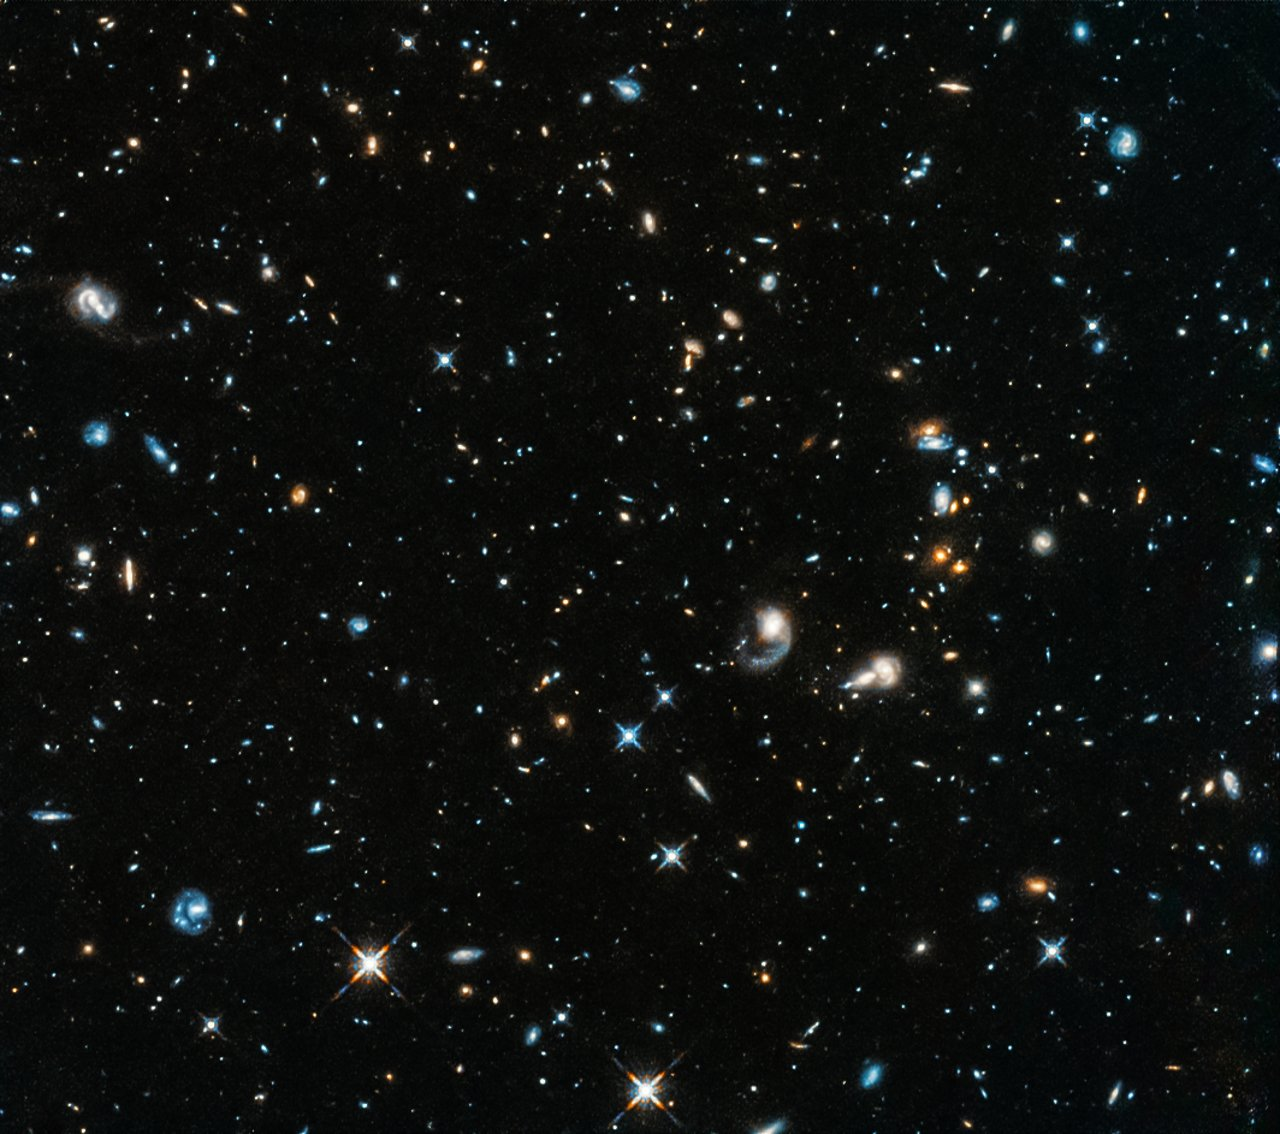 Hubble opens its eye again